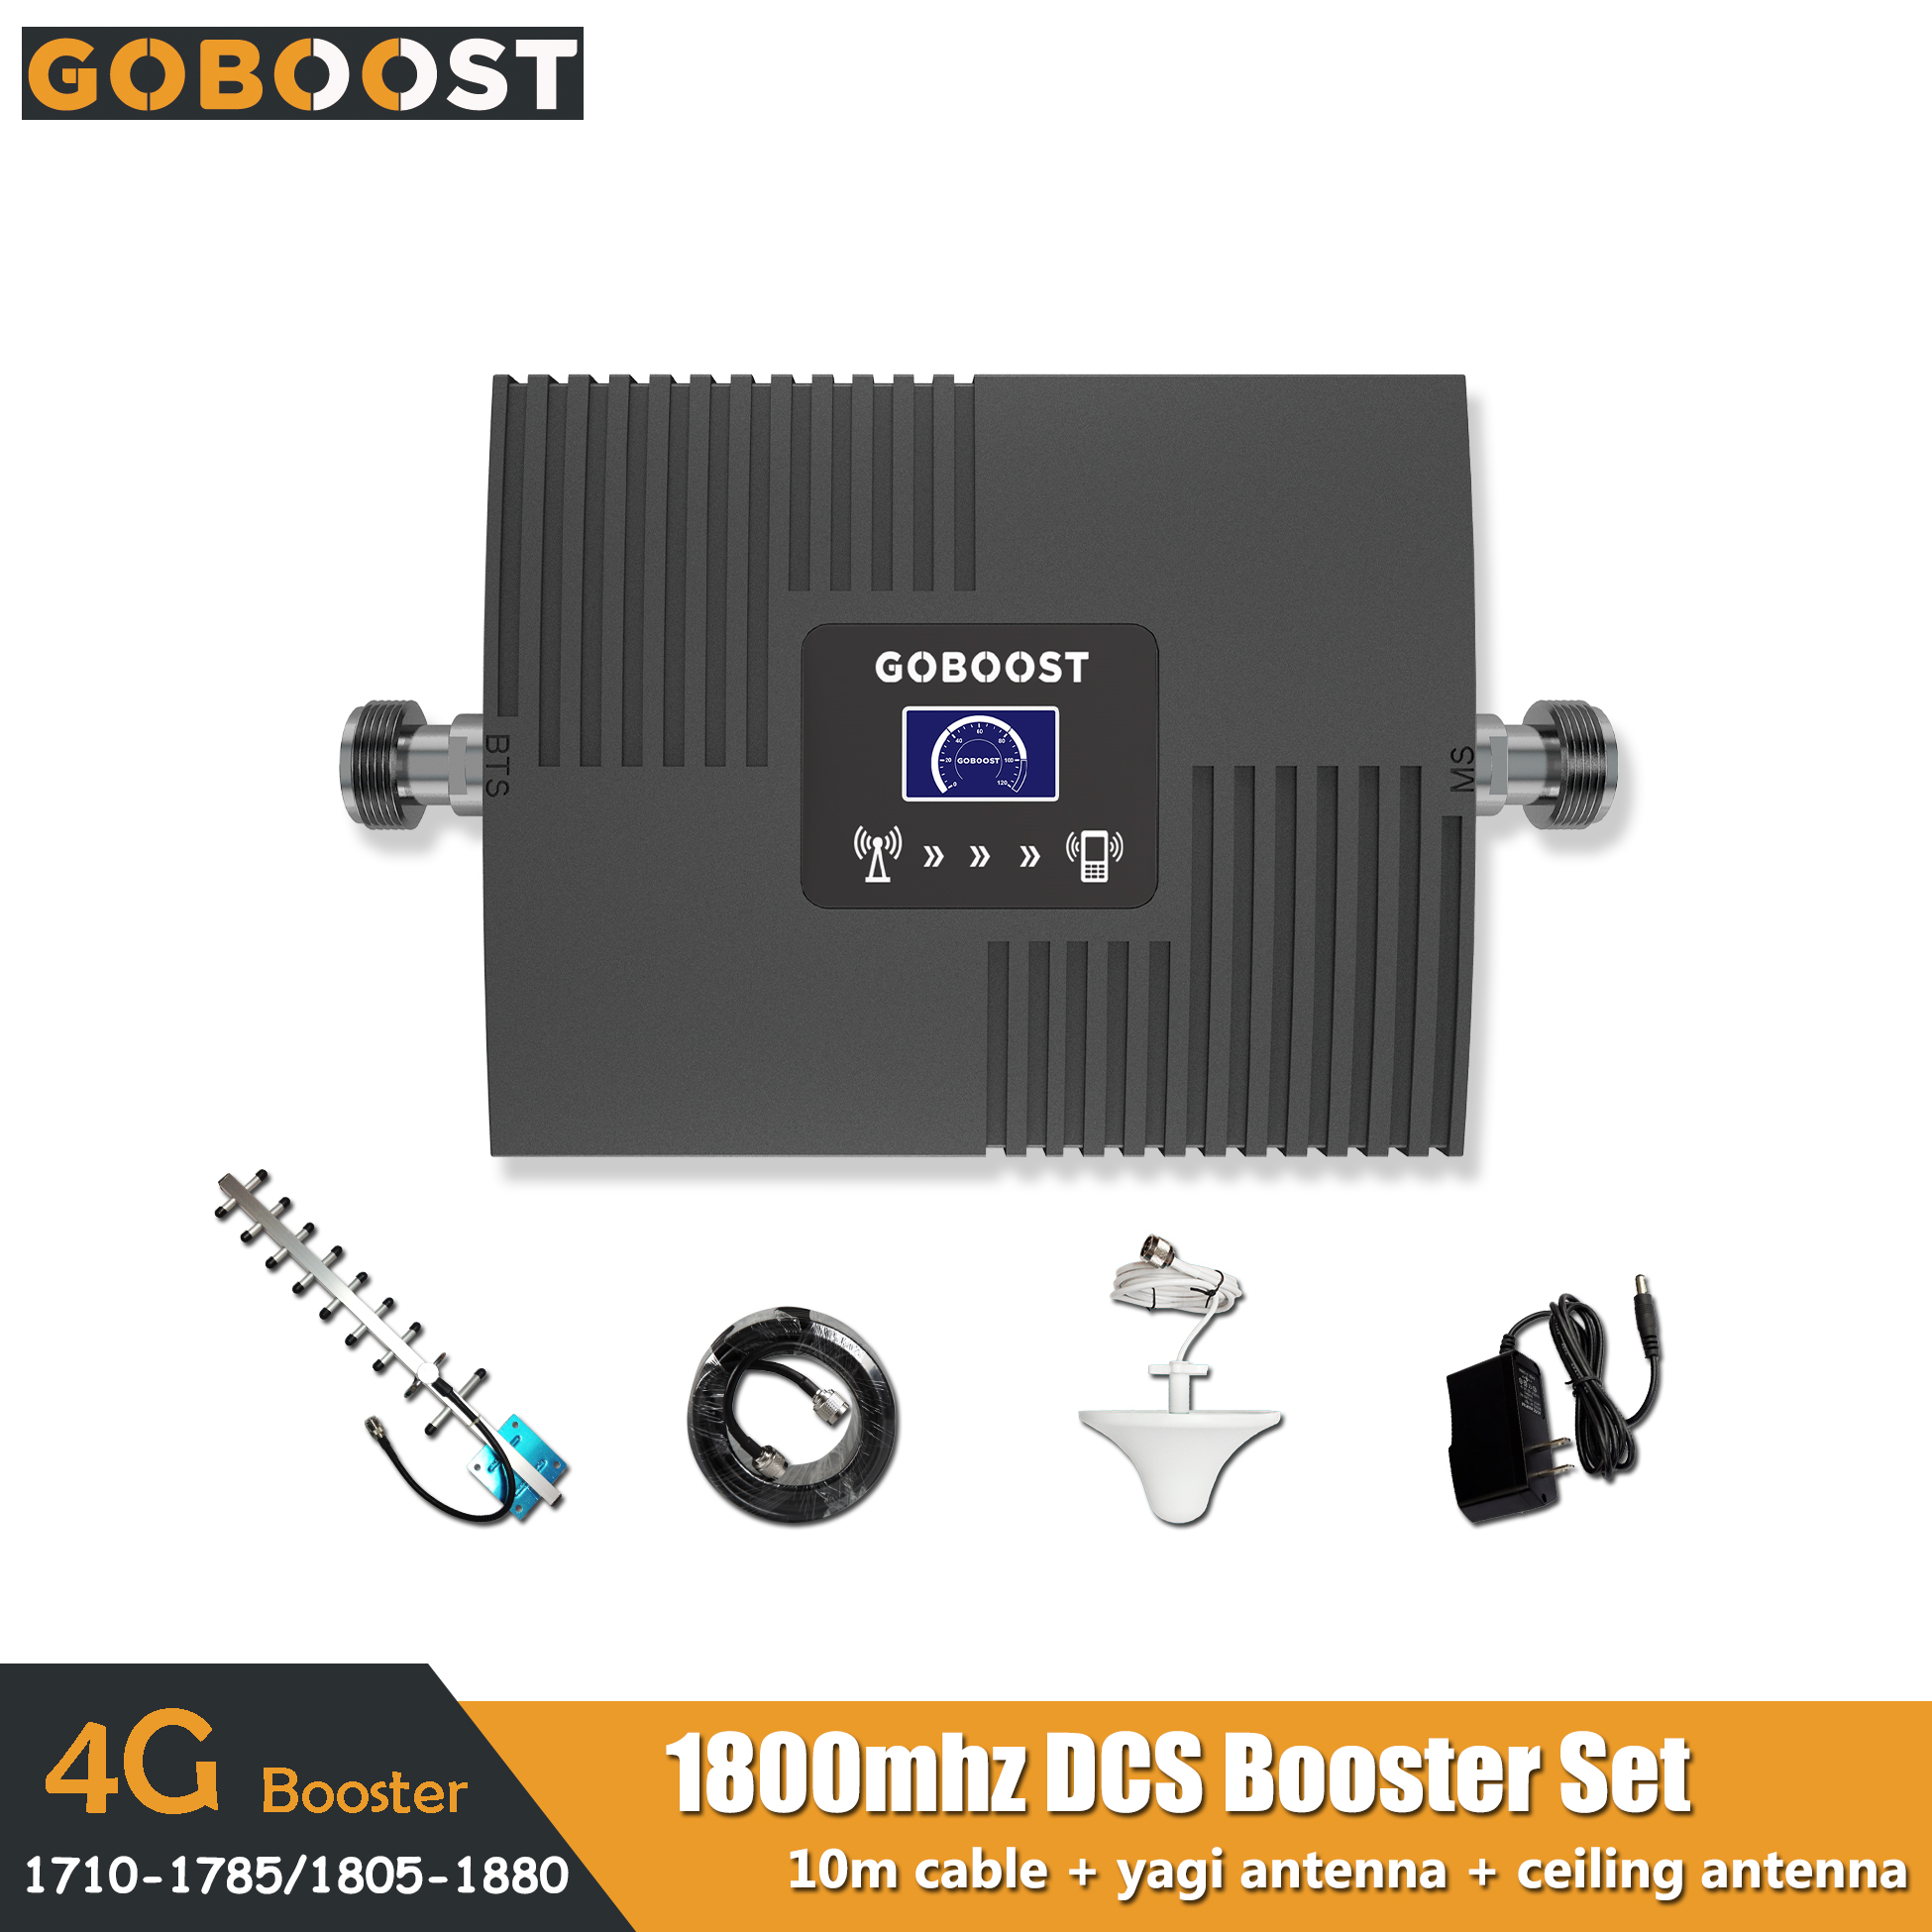 2G 4G DCS LTE 1800mhz Band3 Mini LCD Display Cellular Mobile Signal Booster Repeater Amplifier Network Ceiling+Yagi Antenna 65dB